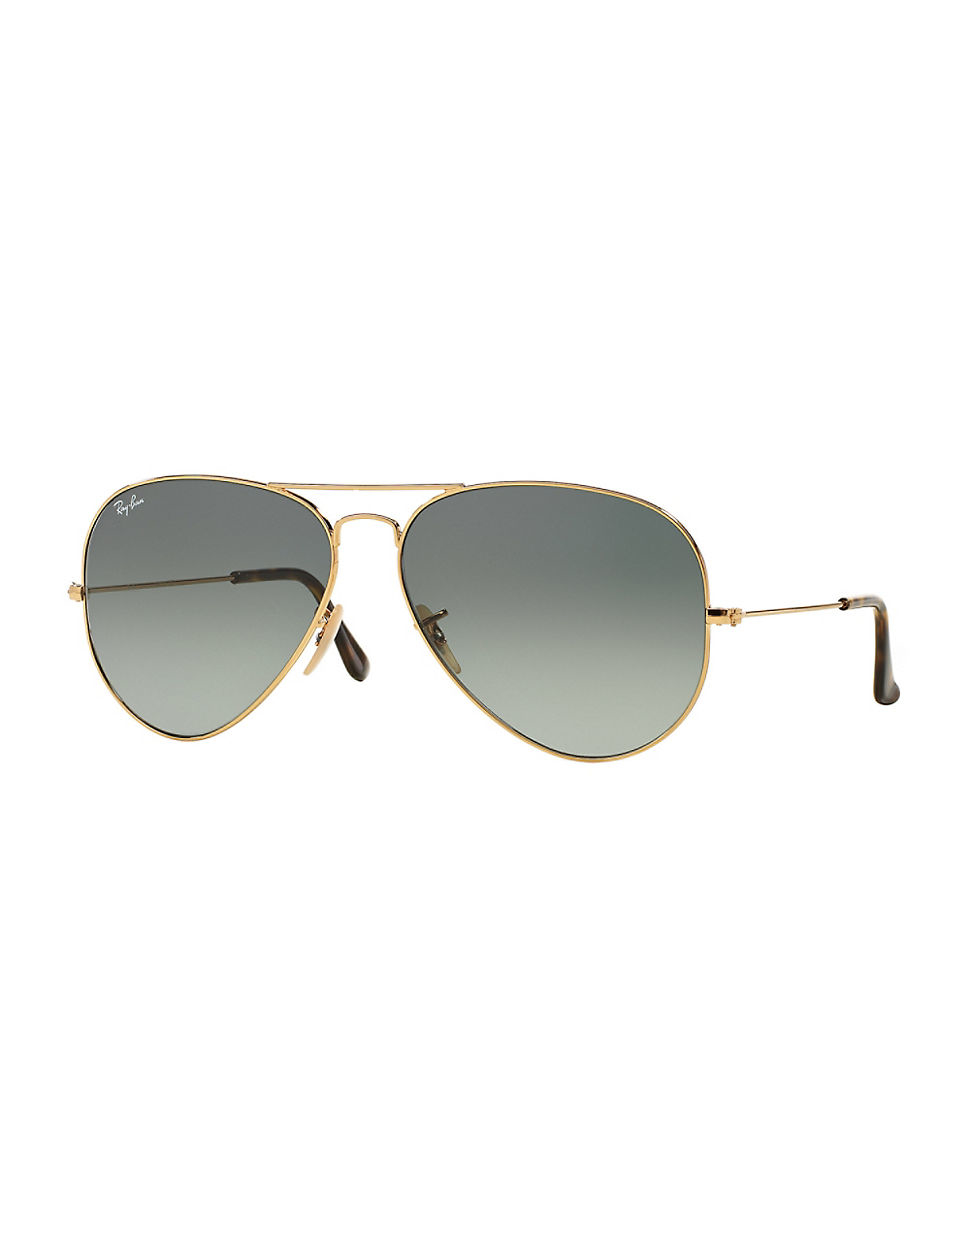 Ray ban sunglasses womens aviator ray bans for Ray ban aviator miroir homme